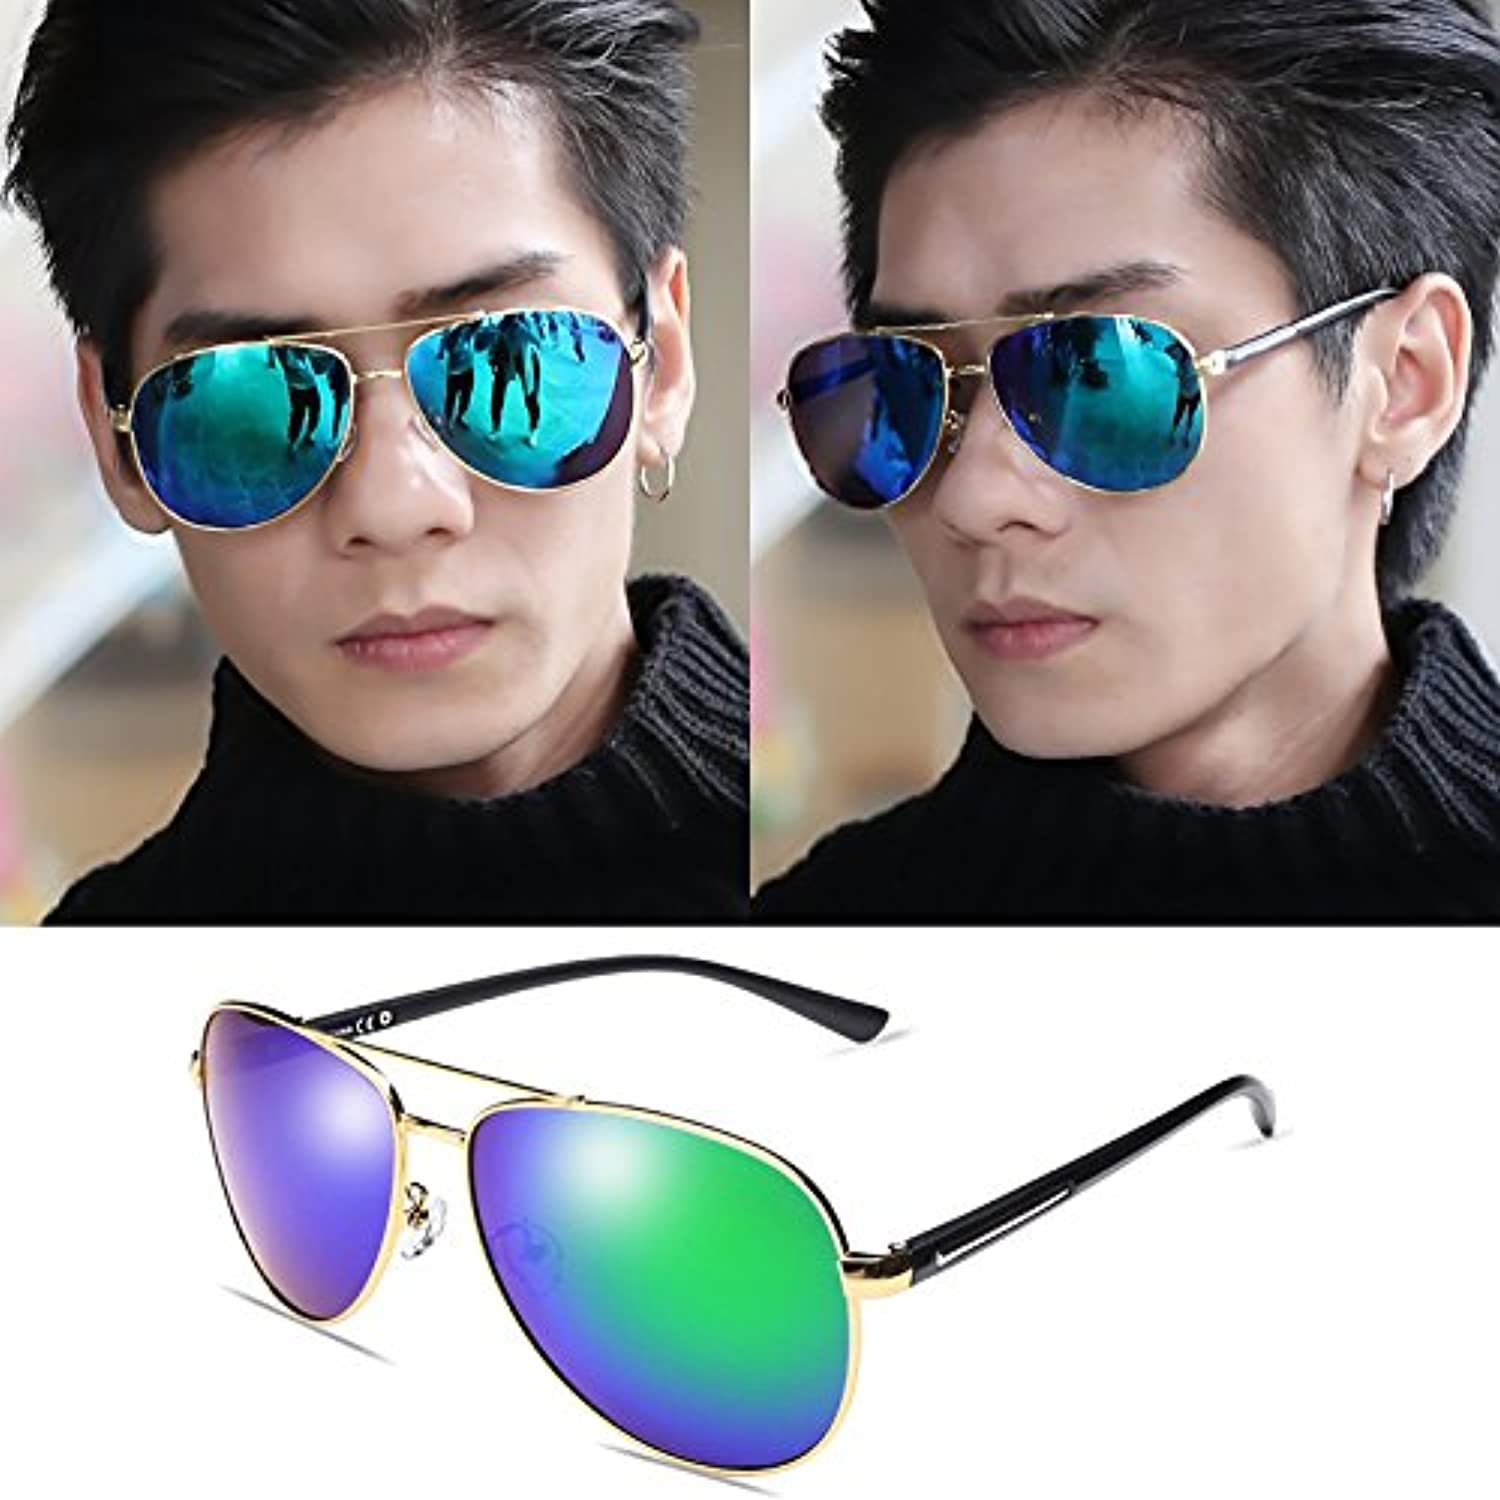 Polarized sunglasses, driver sunglasses, beach tourist glasses, men and women glasses, reflective refracting mirrors, tidal sunglasses,,golden framed ice green